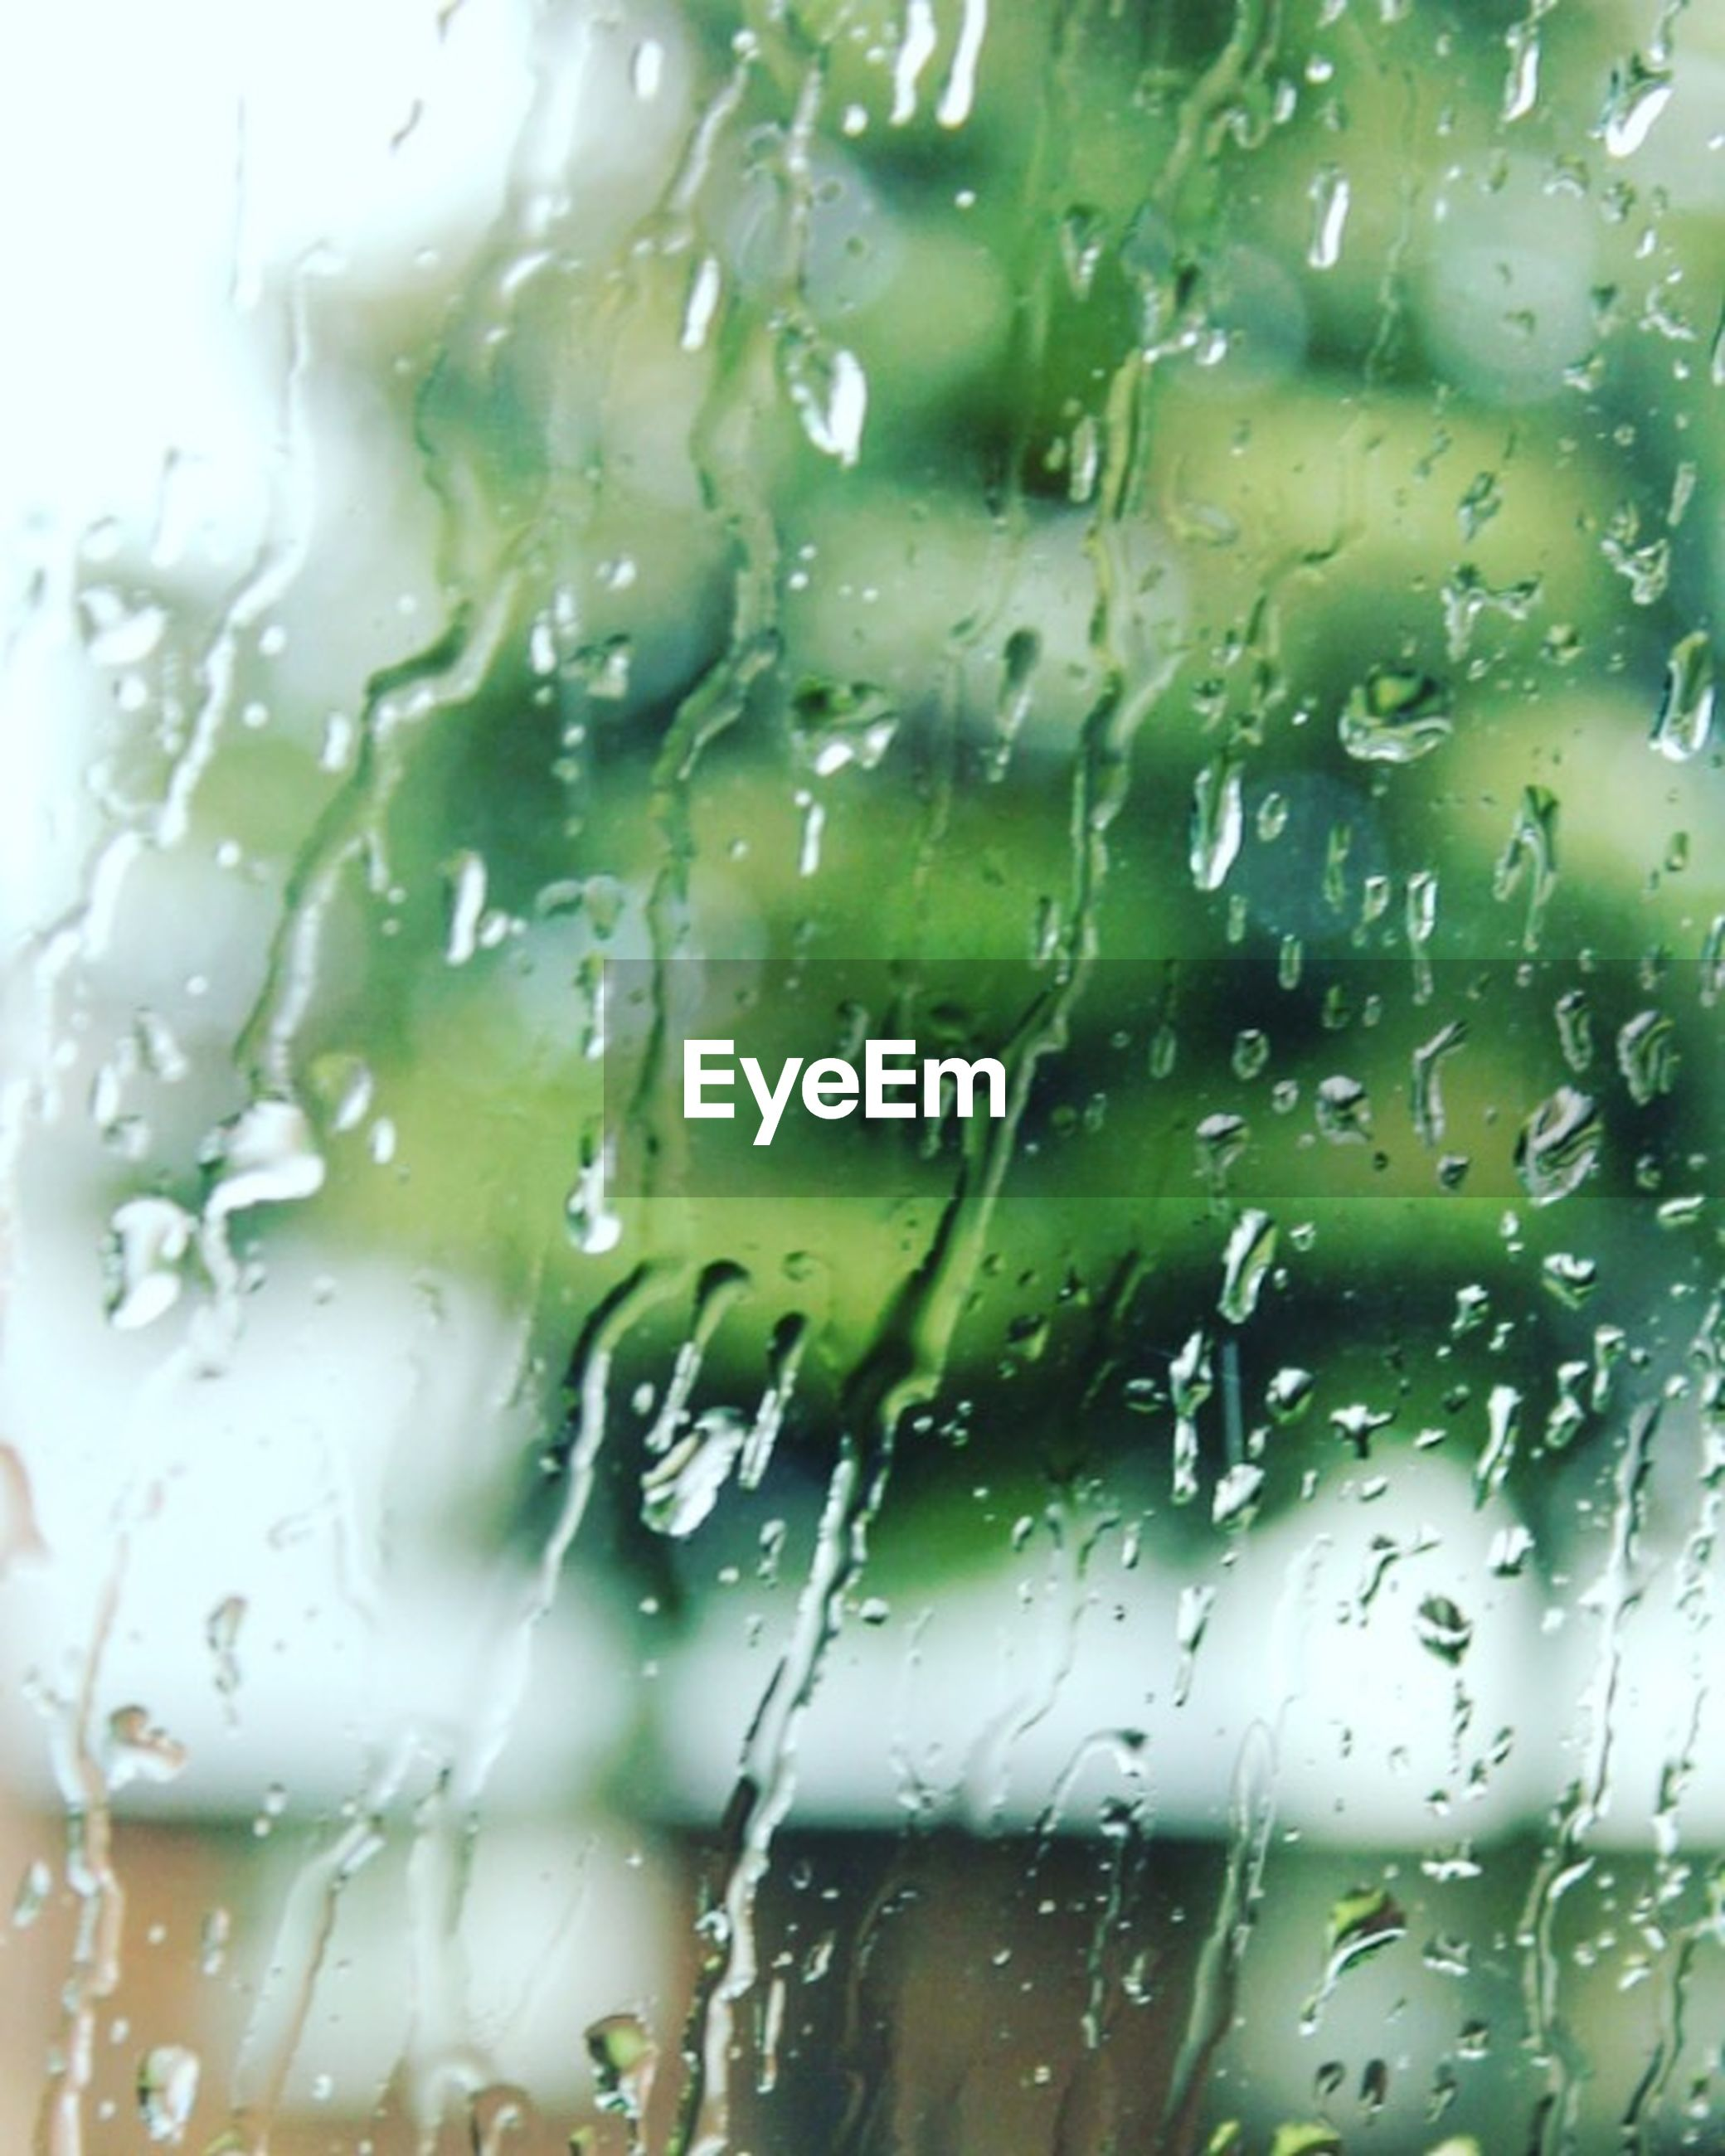 drop, window, wet, indoors, transparent, full frame, glass - material, backgrounds, rain, water, raindrop, focus on foreground, close-up, glass, weather, season, tree, no people, day, detail